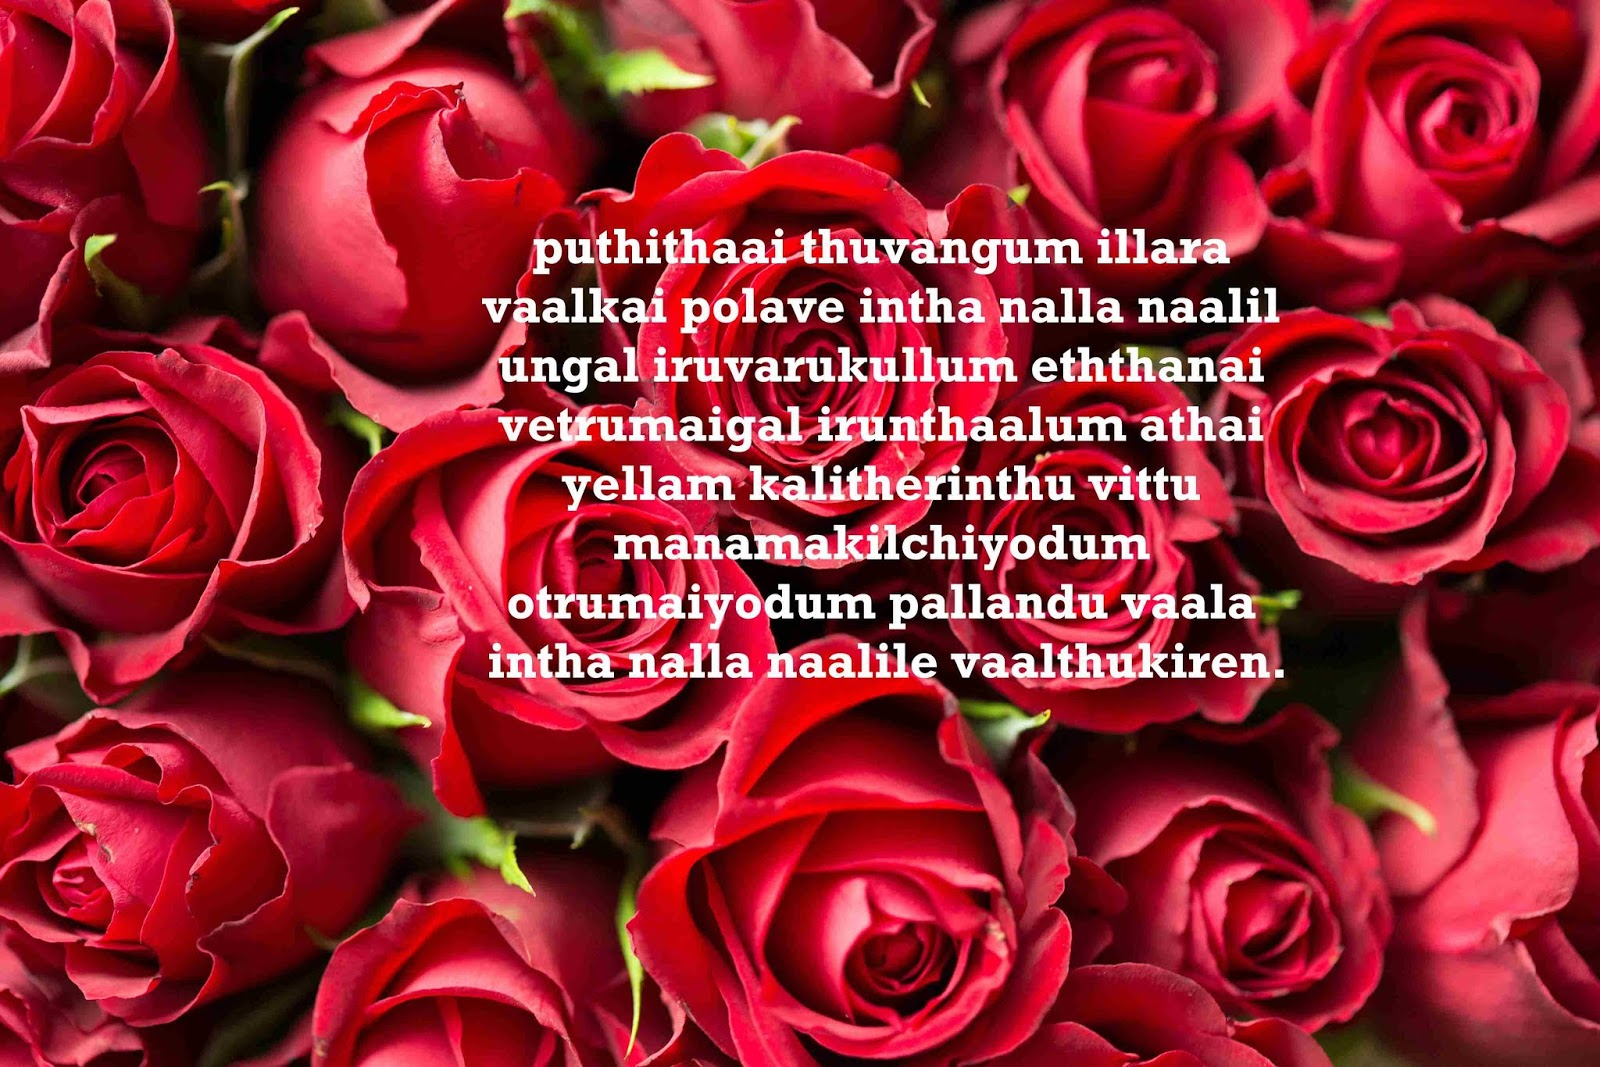 Top 20 Wedding Anniversary Wishes In Tamil Kavithai